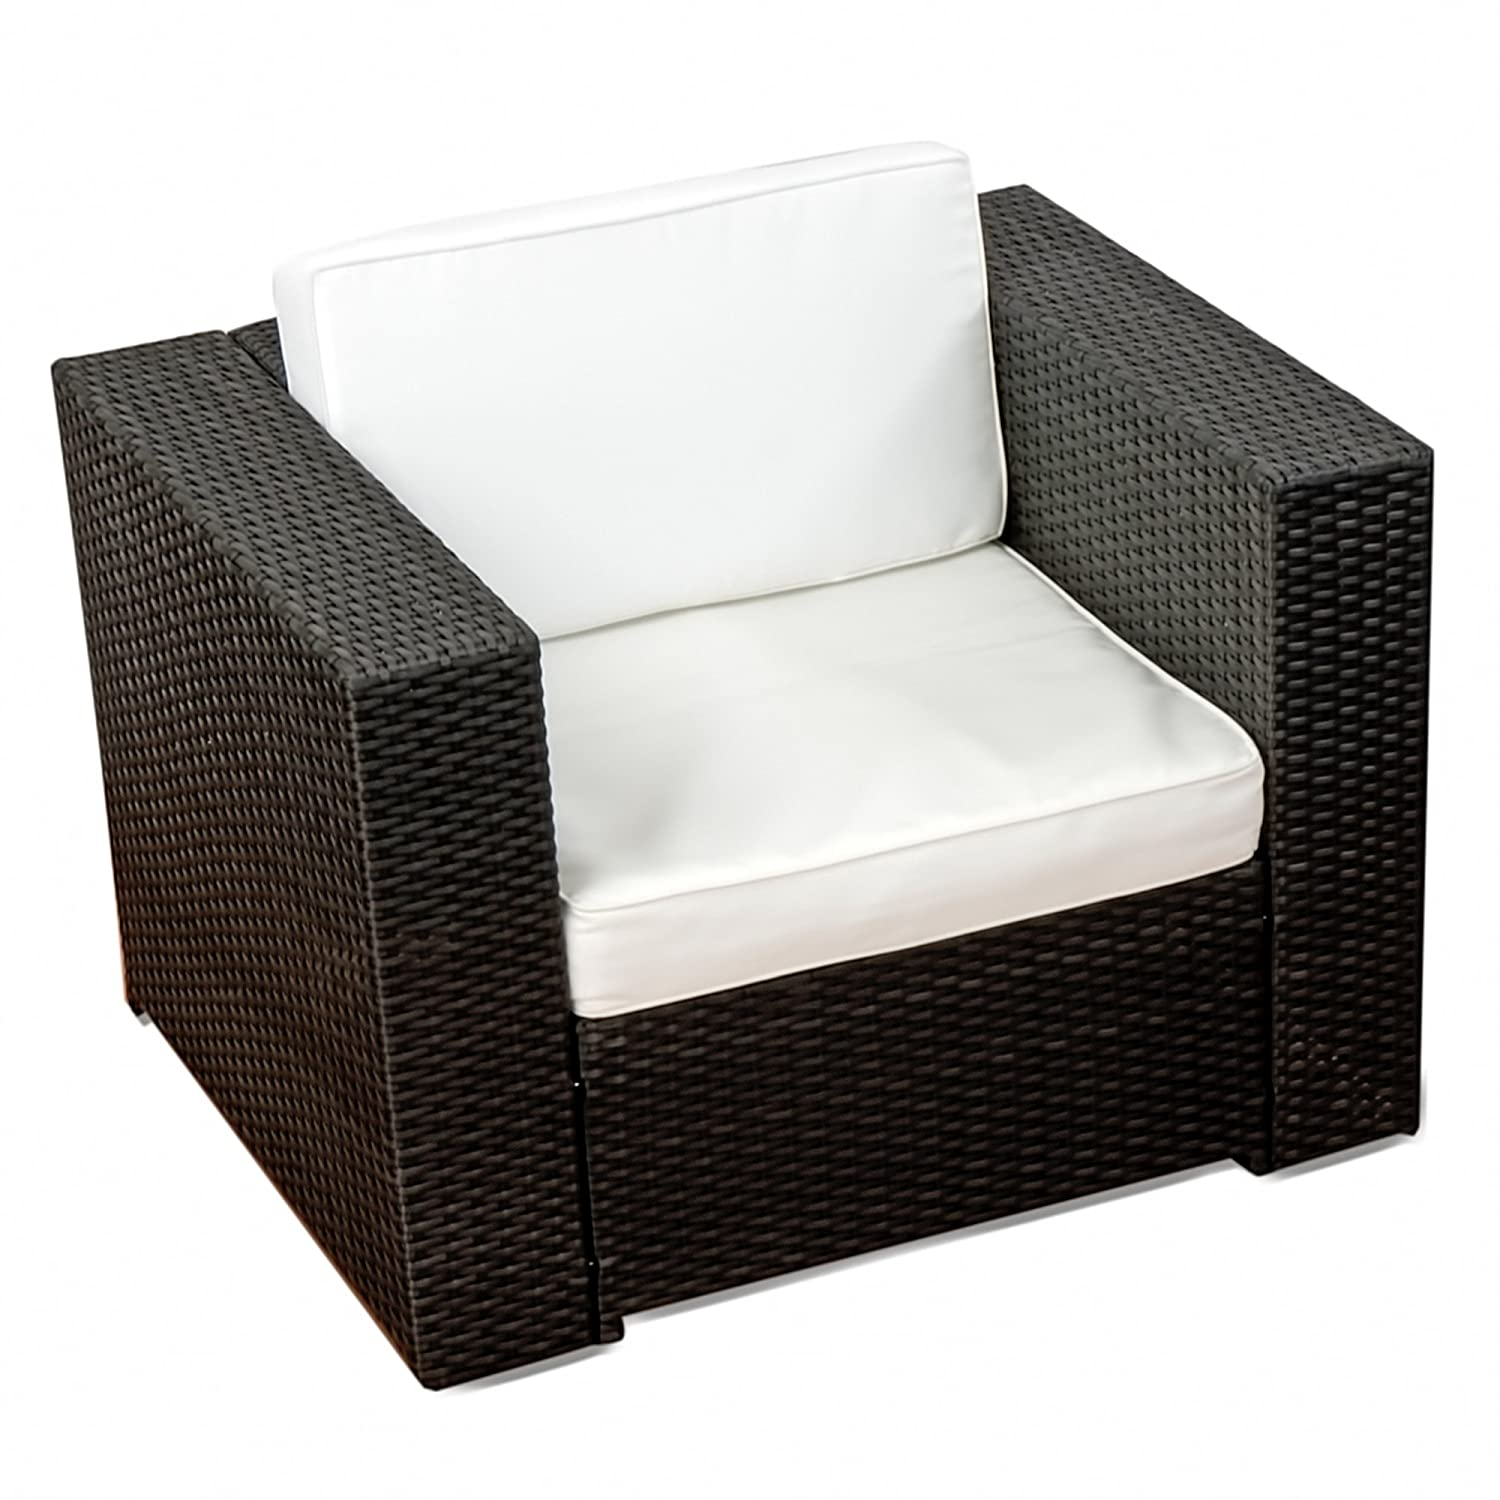 Garten lounge sessel  Amazon.de: XINRO (1er) Premium Lounge Sessel - Lounge Sofa ...